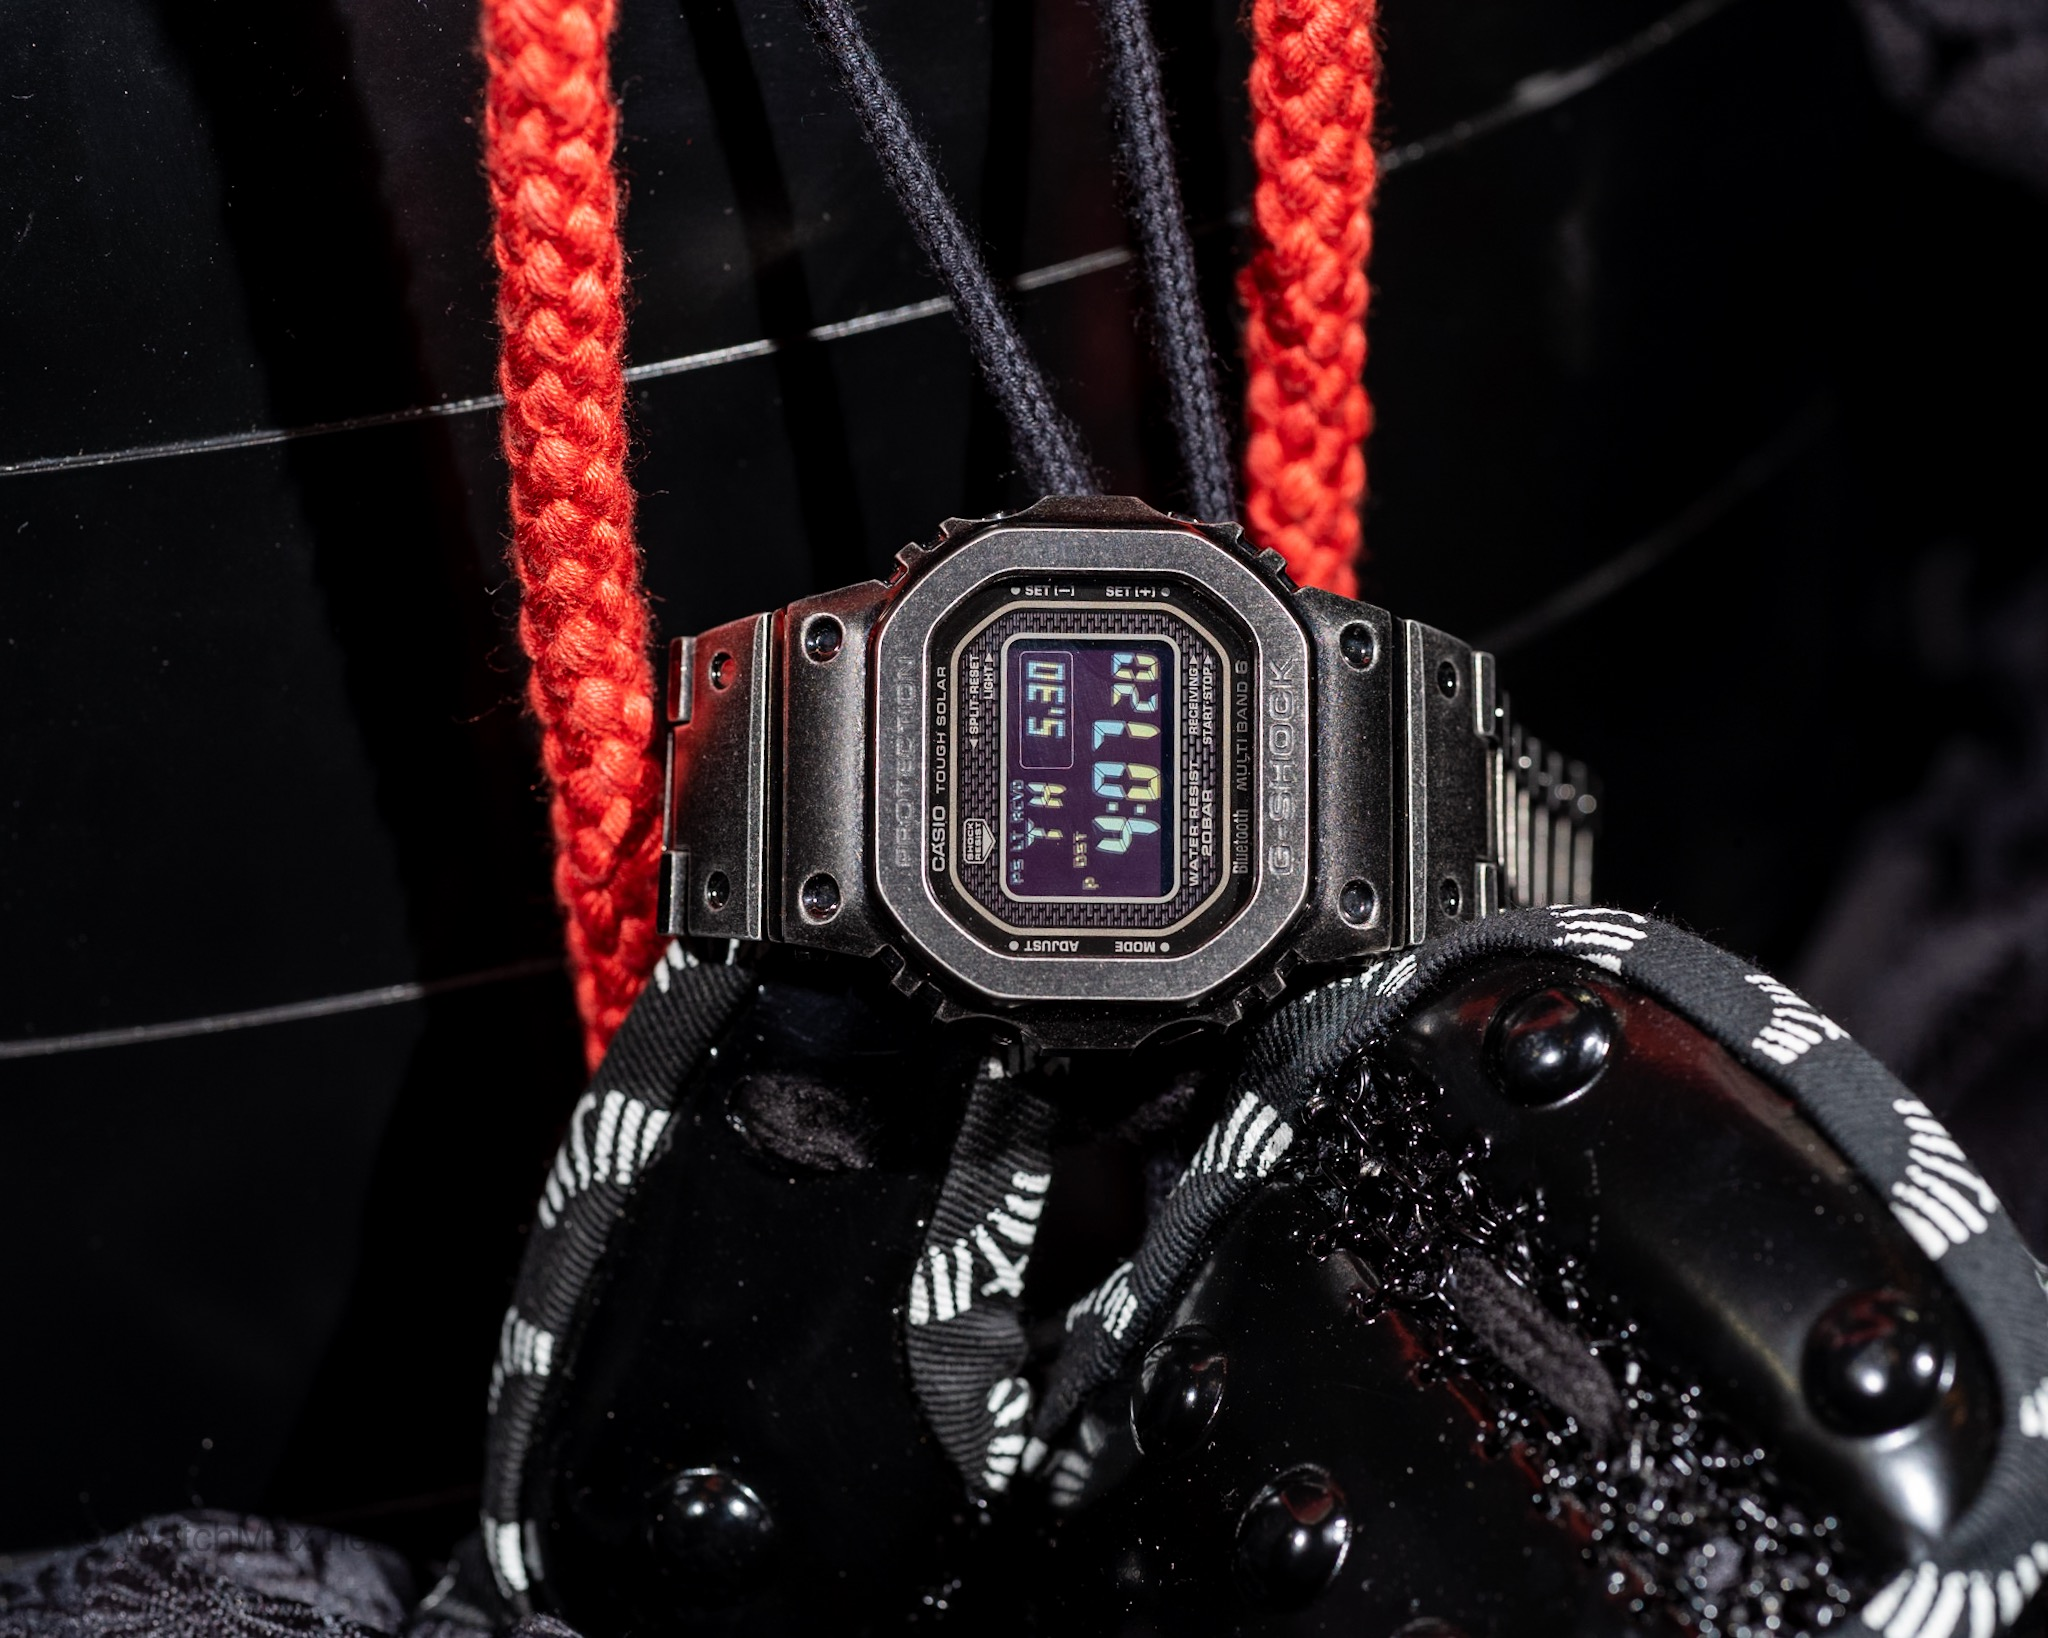 casio-couturetime-2019-5.JPG